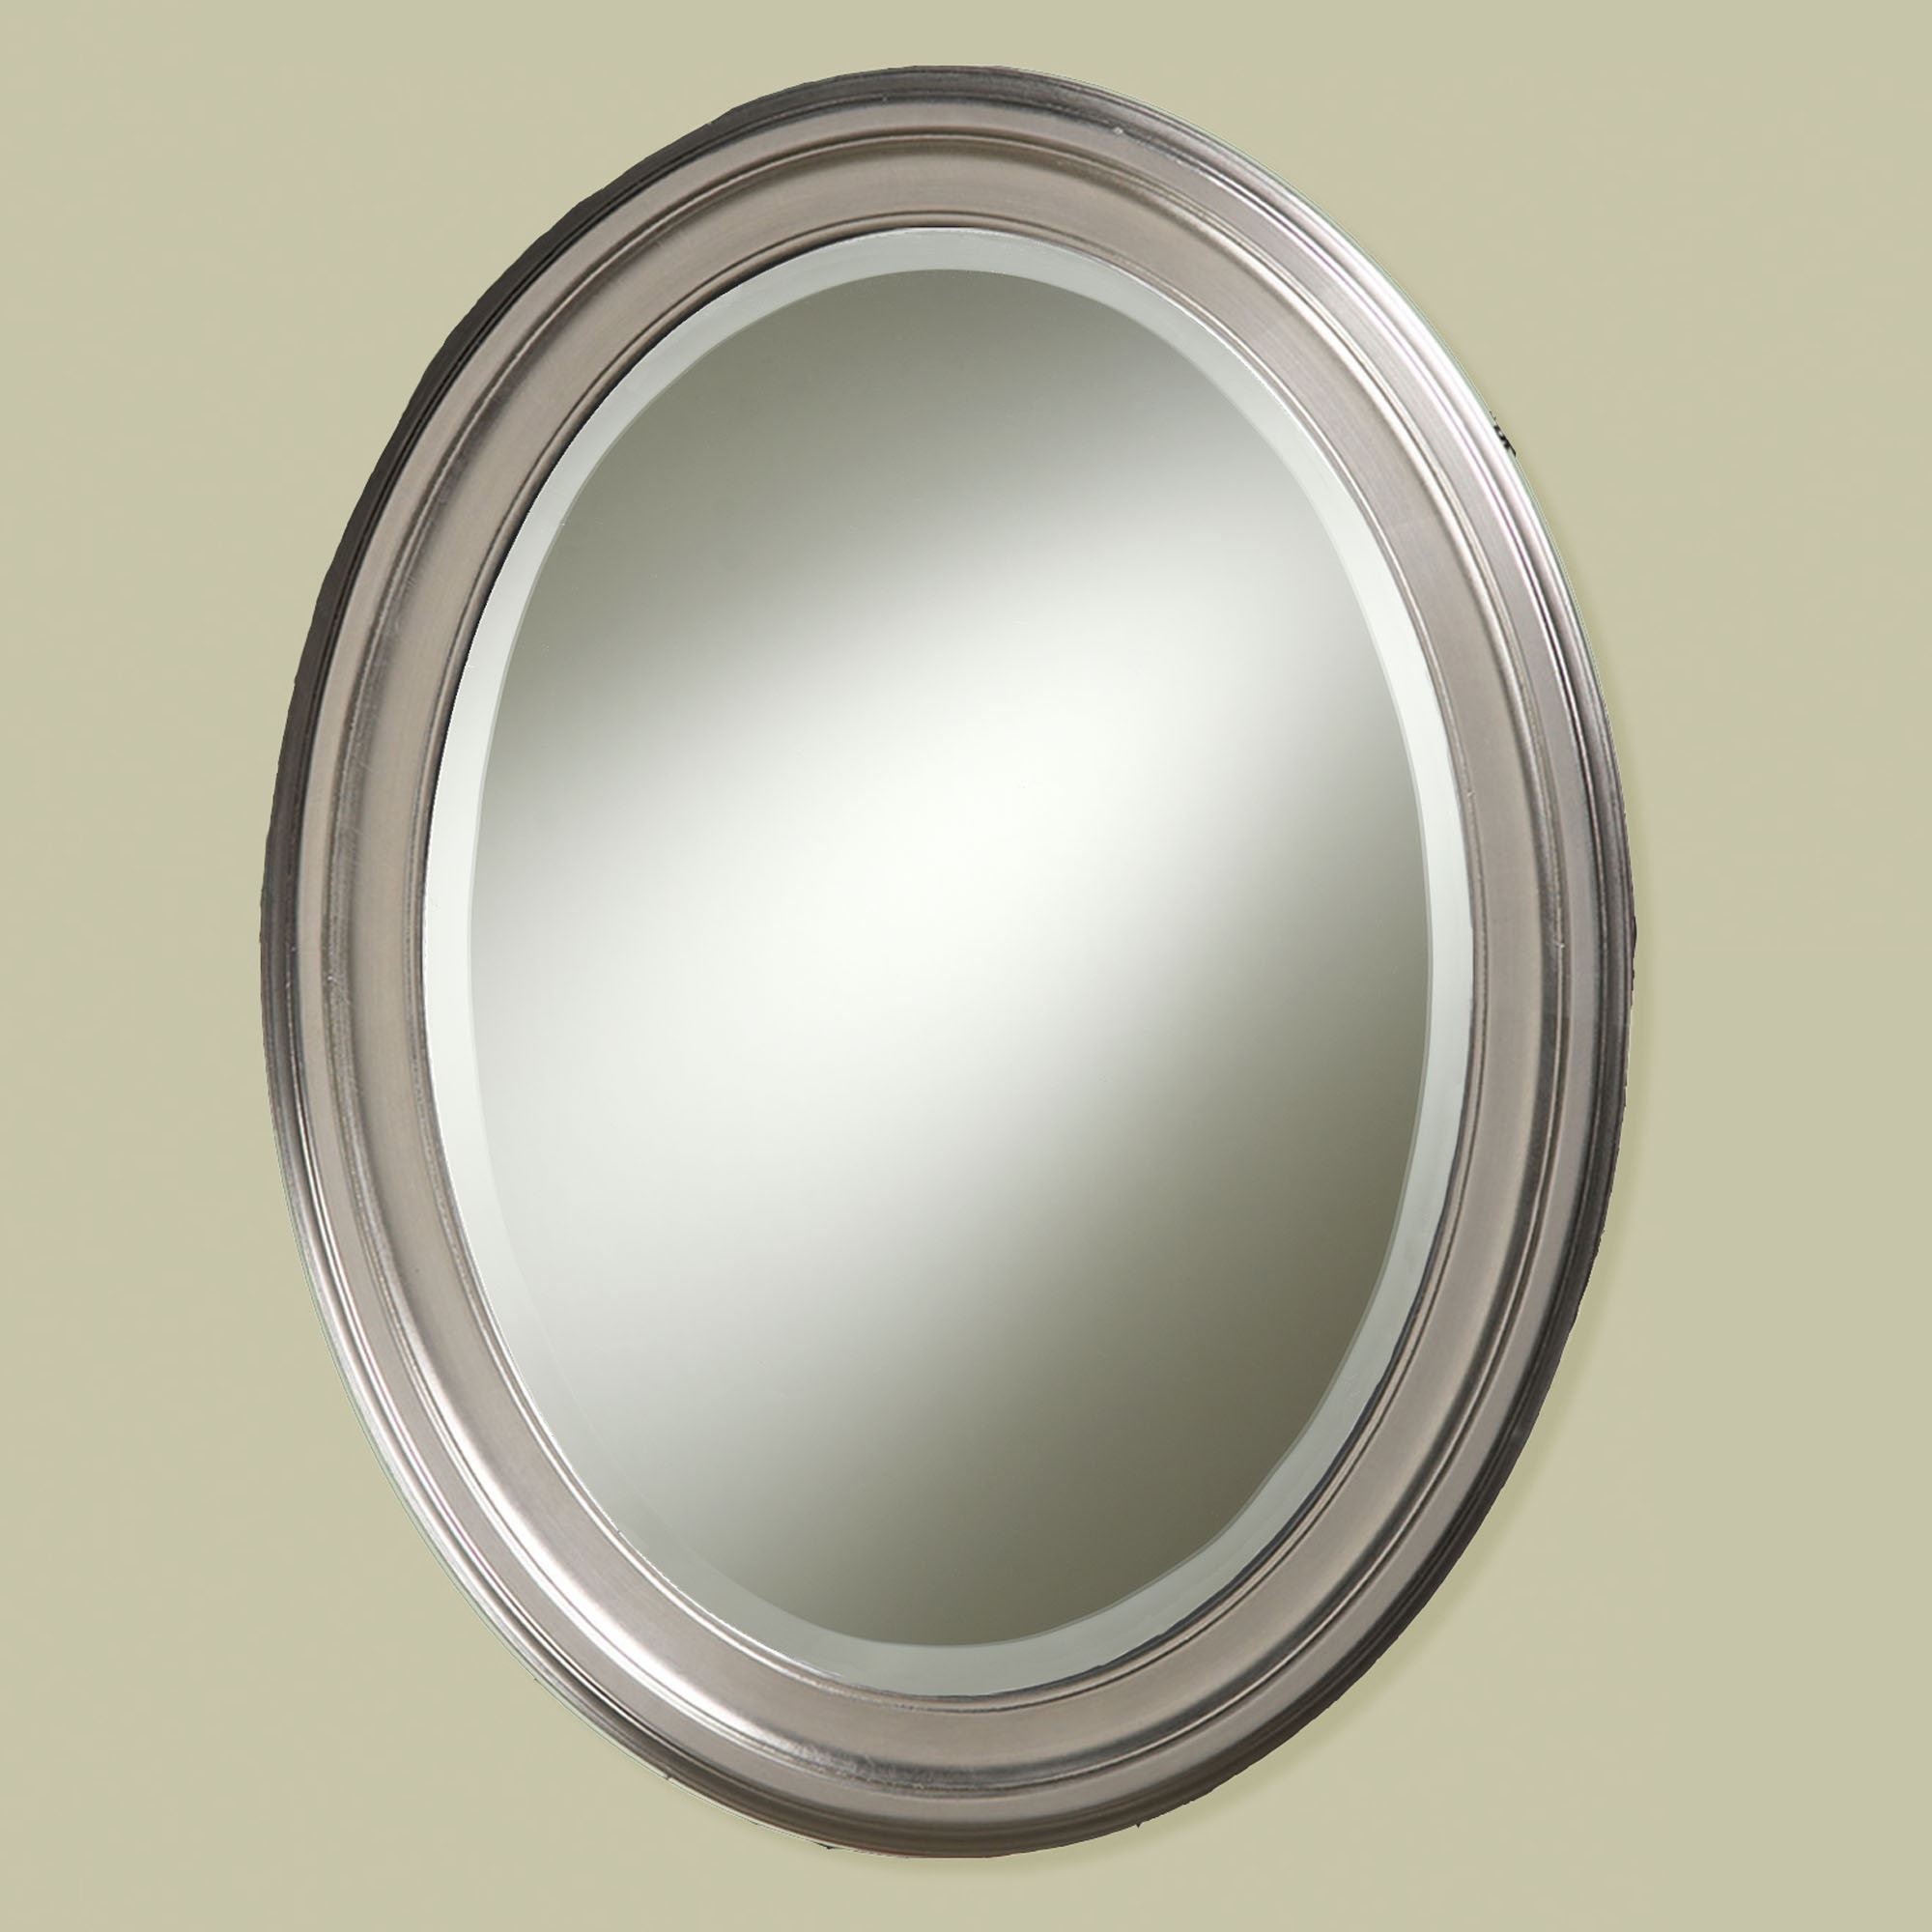 Loree Brushed Nickel Wall Mirror. Touch To Zoom